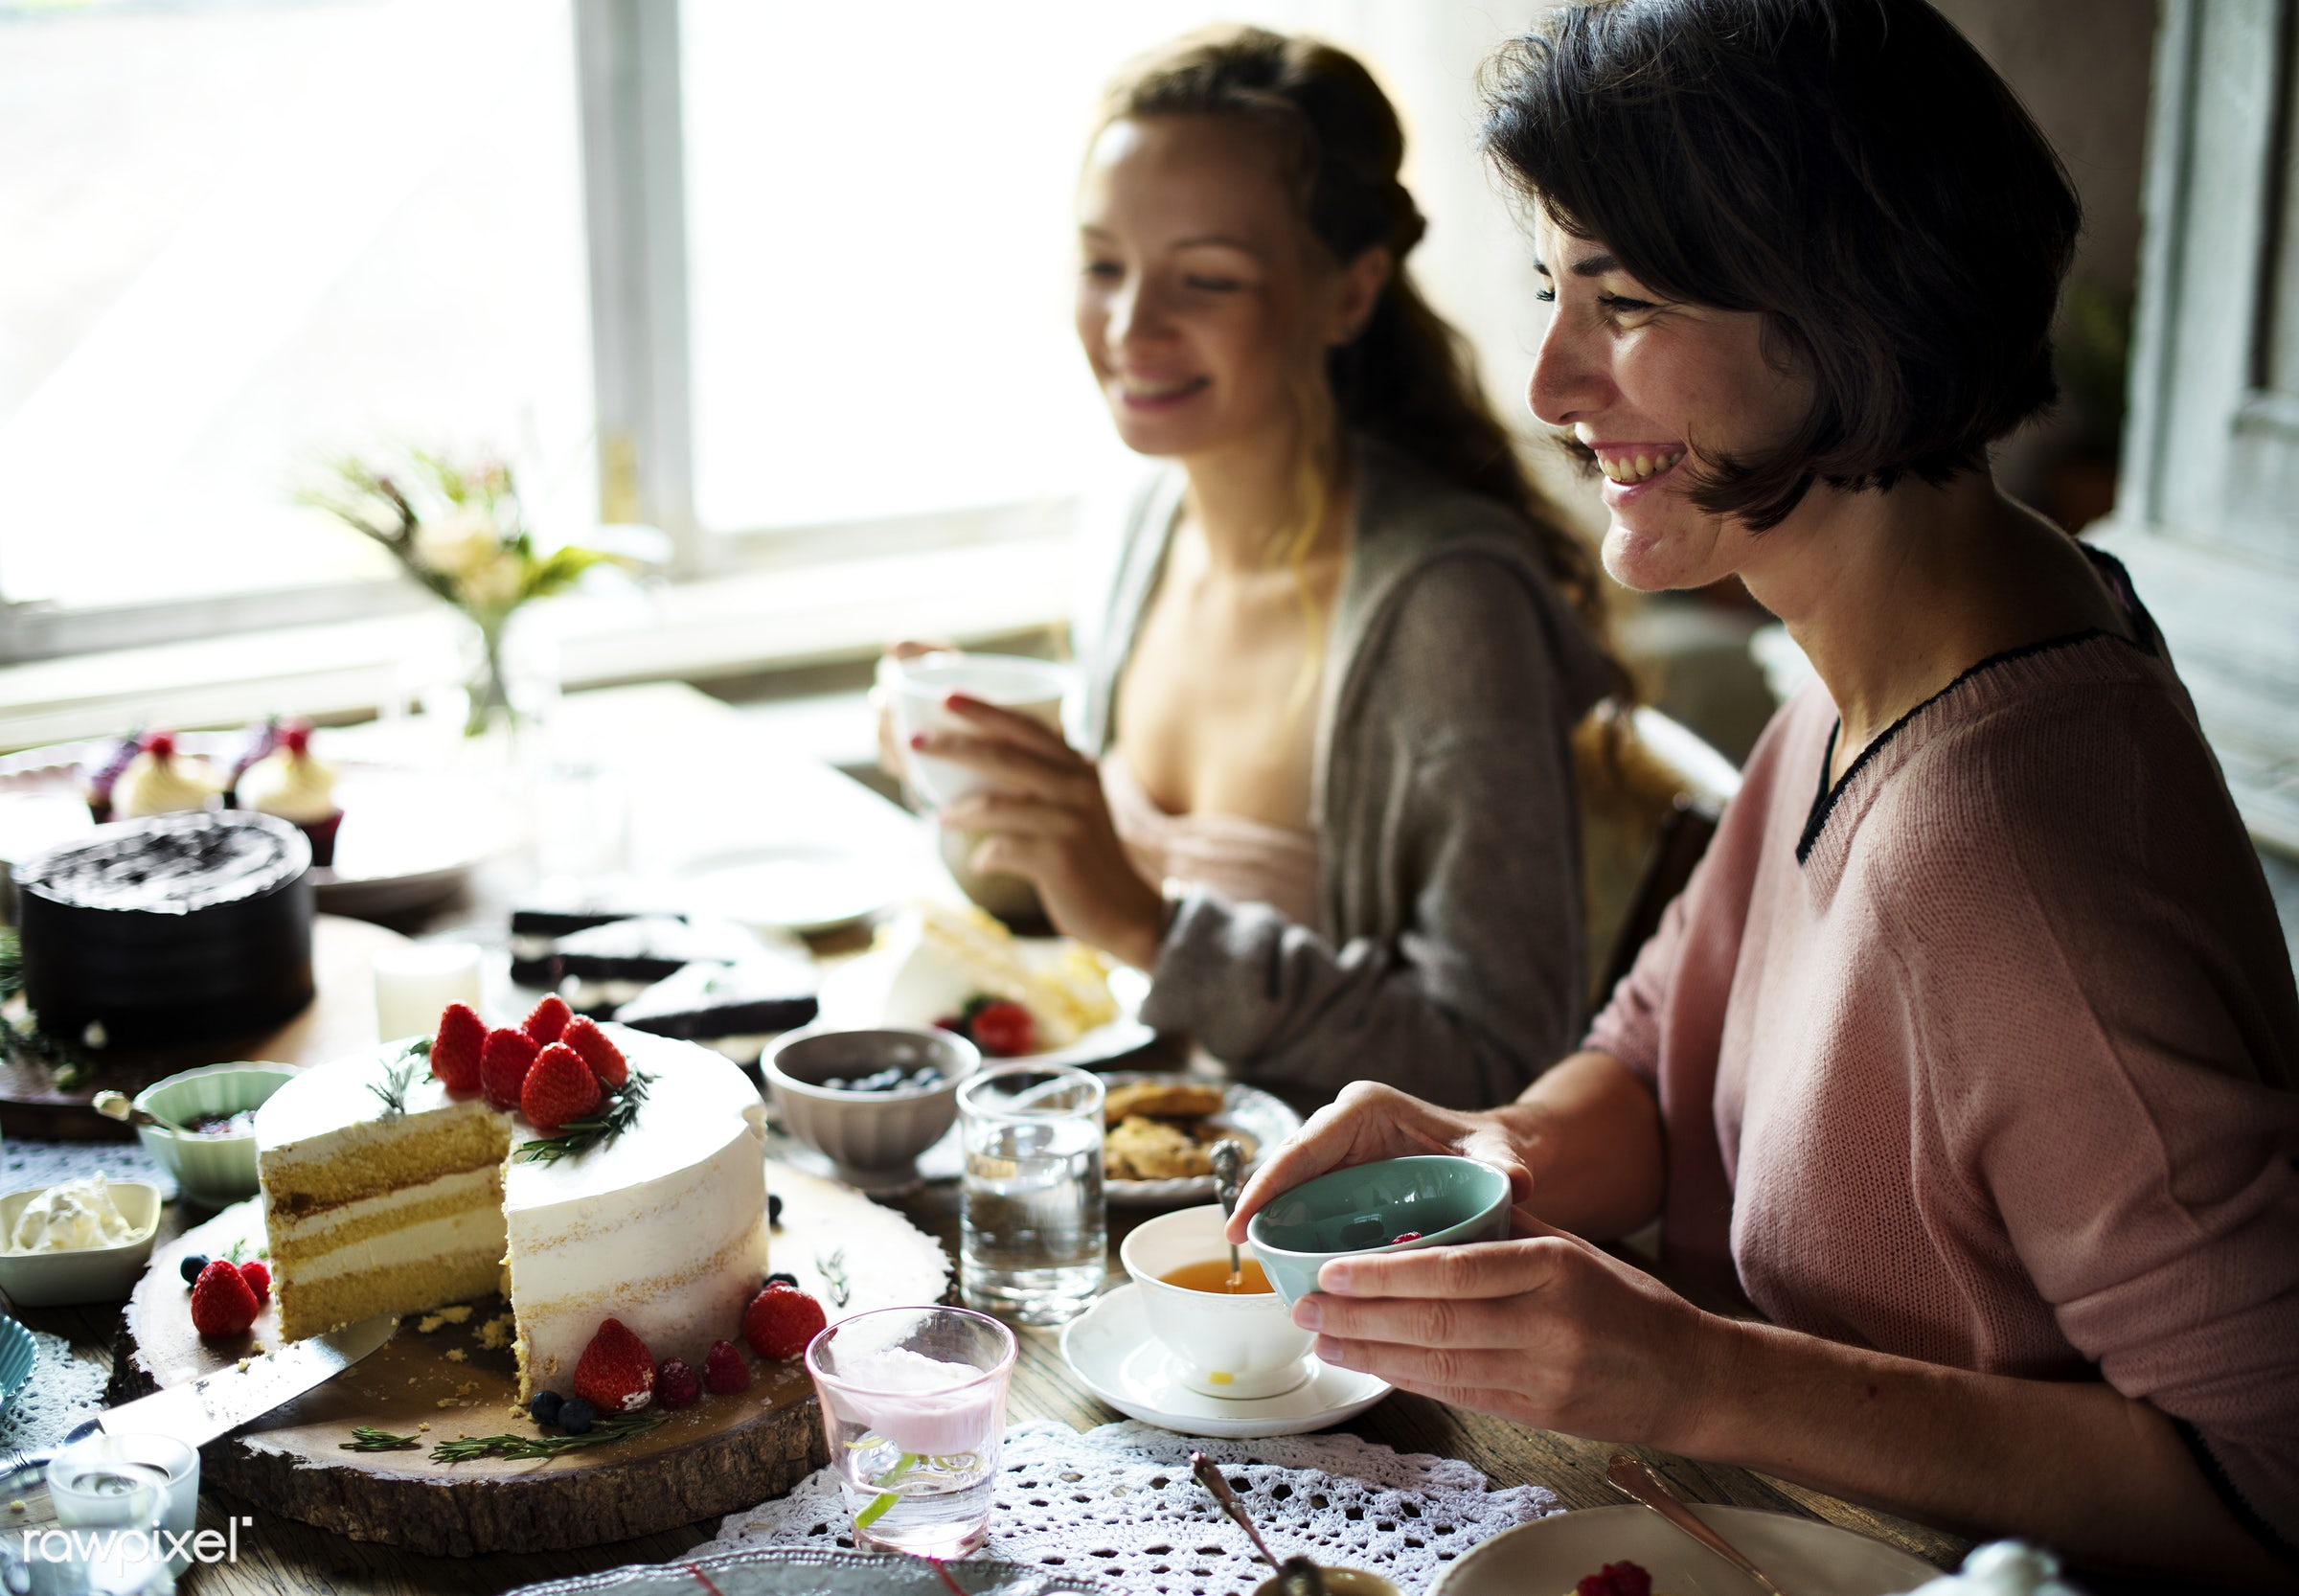 Friends Gathering Together on Tea Party Eating Cakes Enjoyment happiness - dish, person, recipe, party, tea, people,...